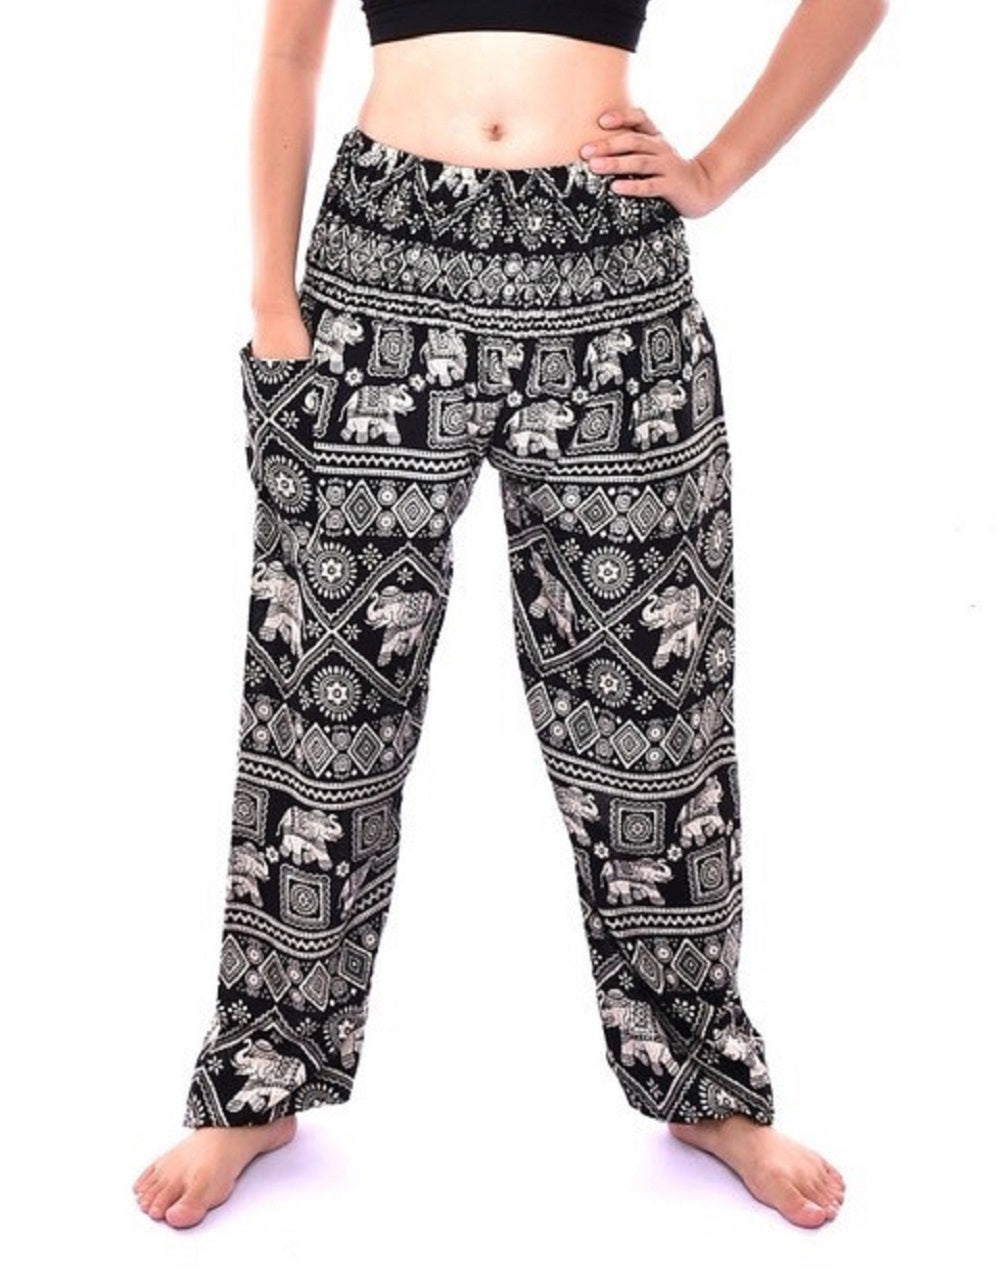 Bohotusk Kids Black Elephant Print Elasticated Smocked Waist Harem Pants (9 - 12 Years)